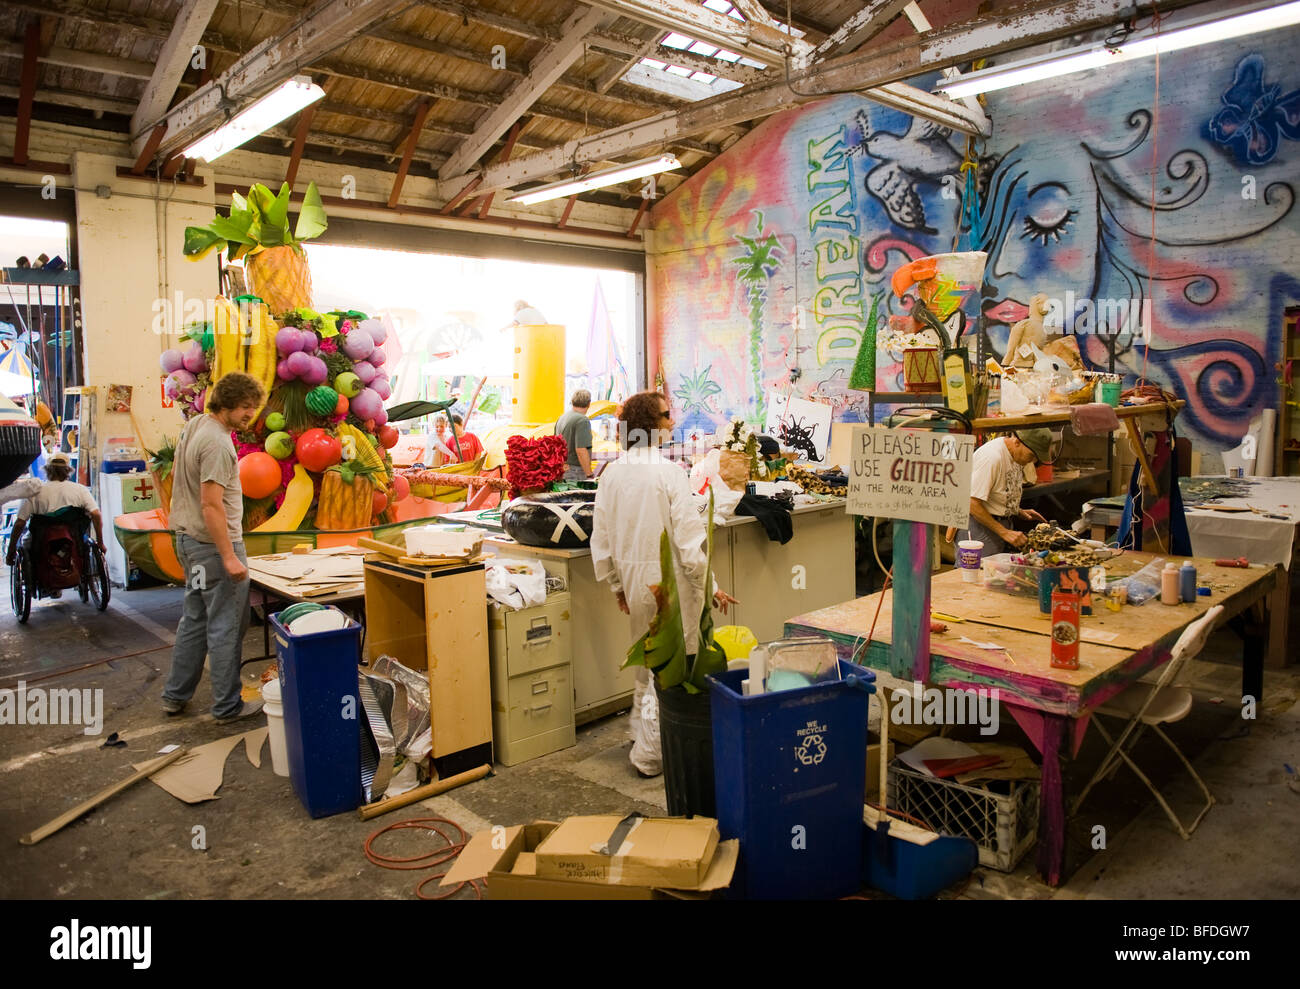 Volunteers at the workshop for a parade in Santa Barbara. The parade features extravagant floats and costumes. - Stock Image